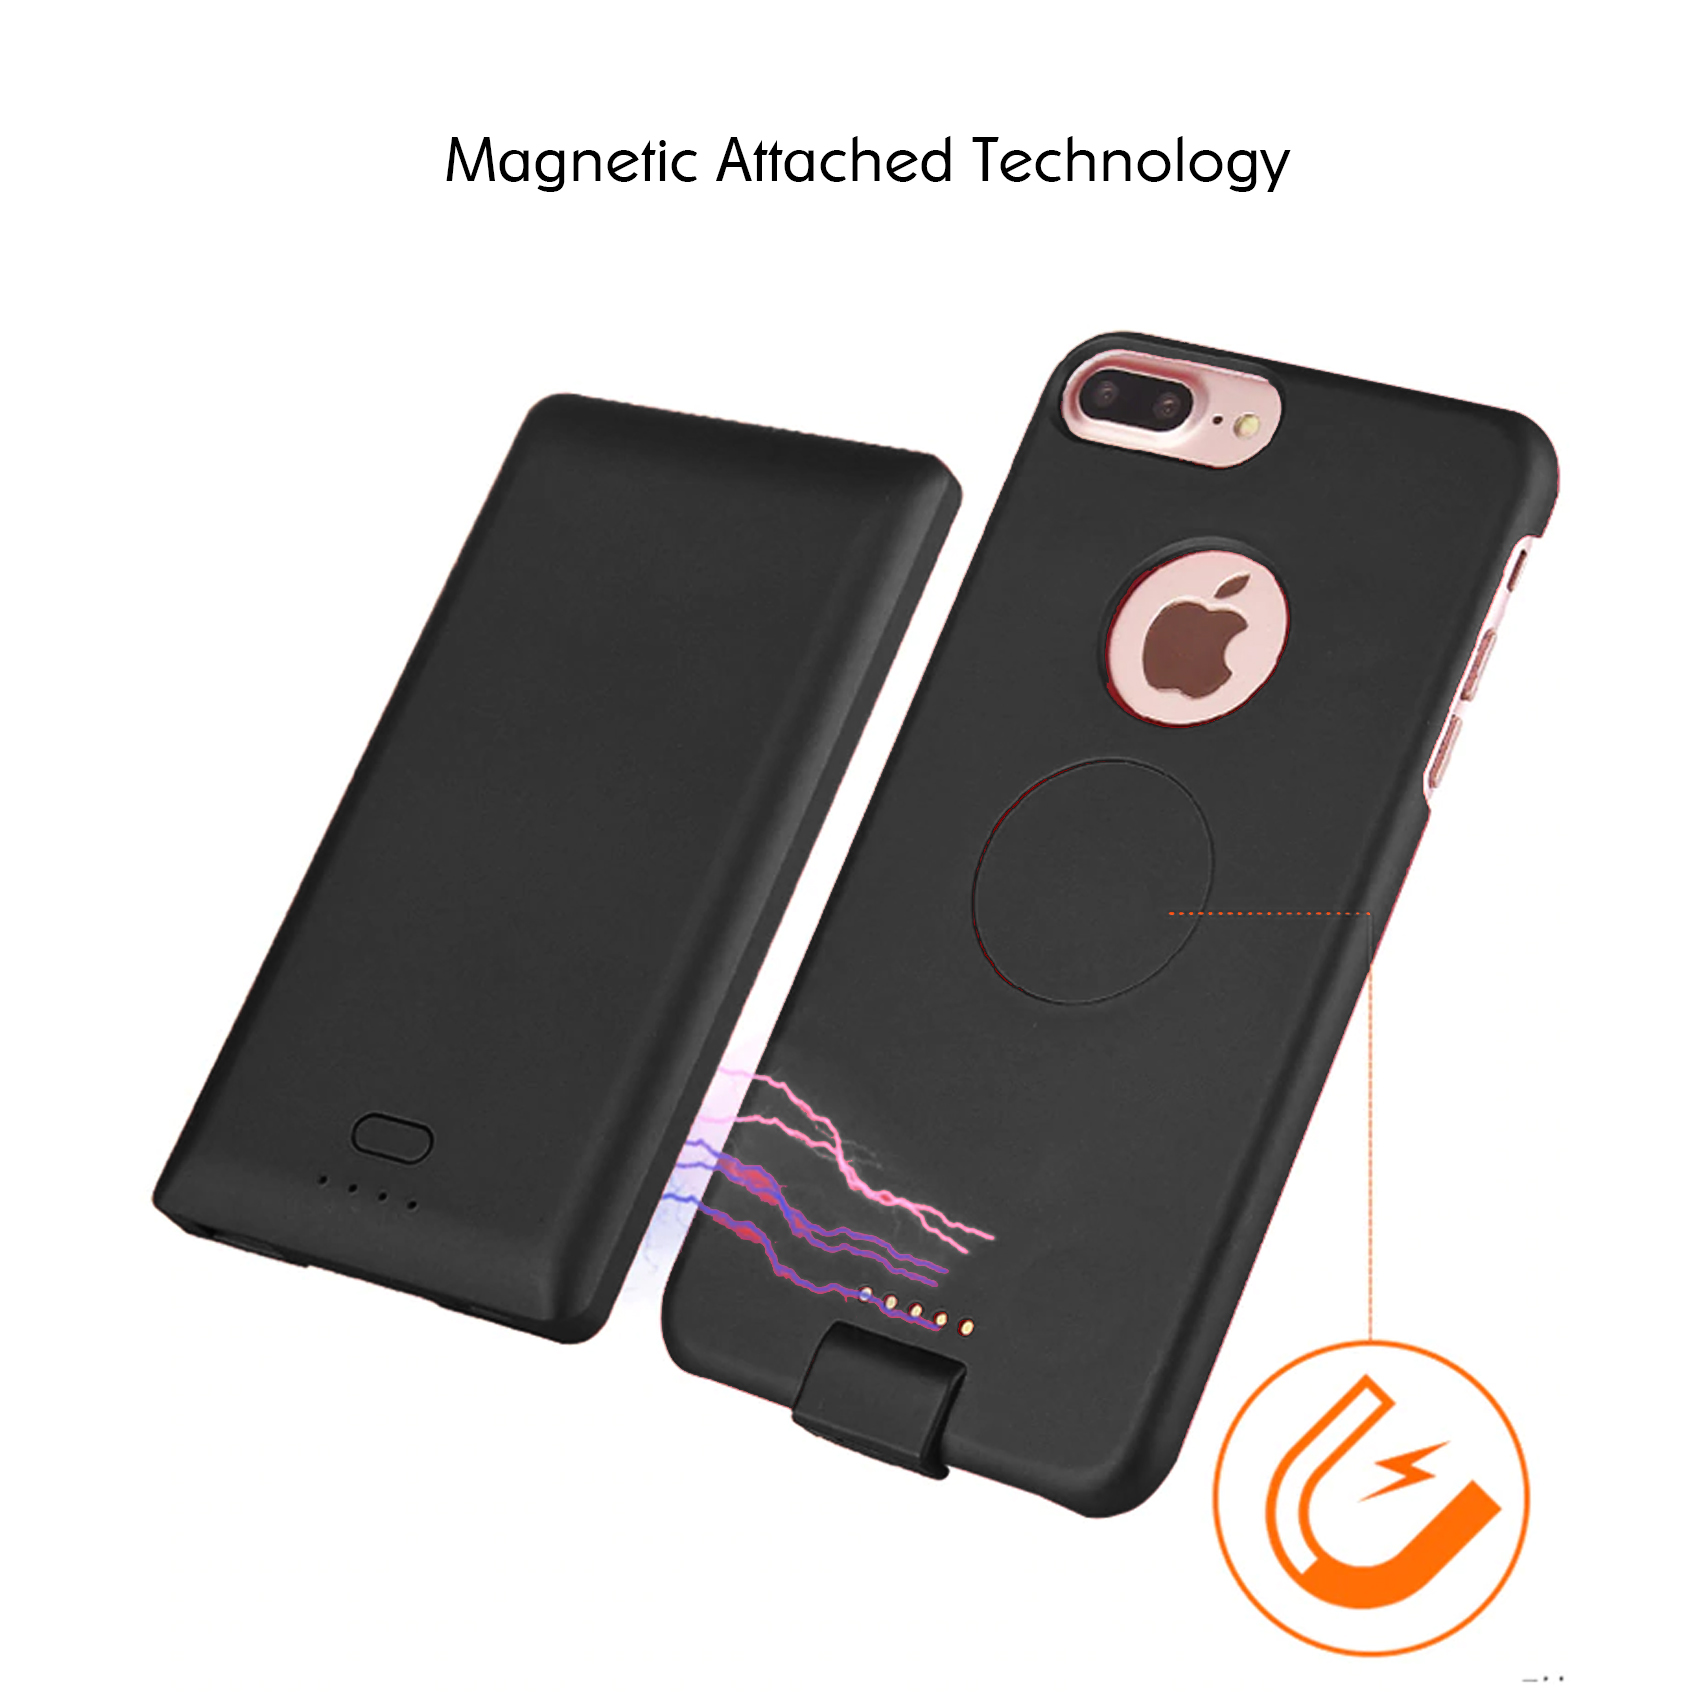 iPhone 6 6s 7 8 Magnetic Battery Case - Black